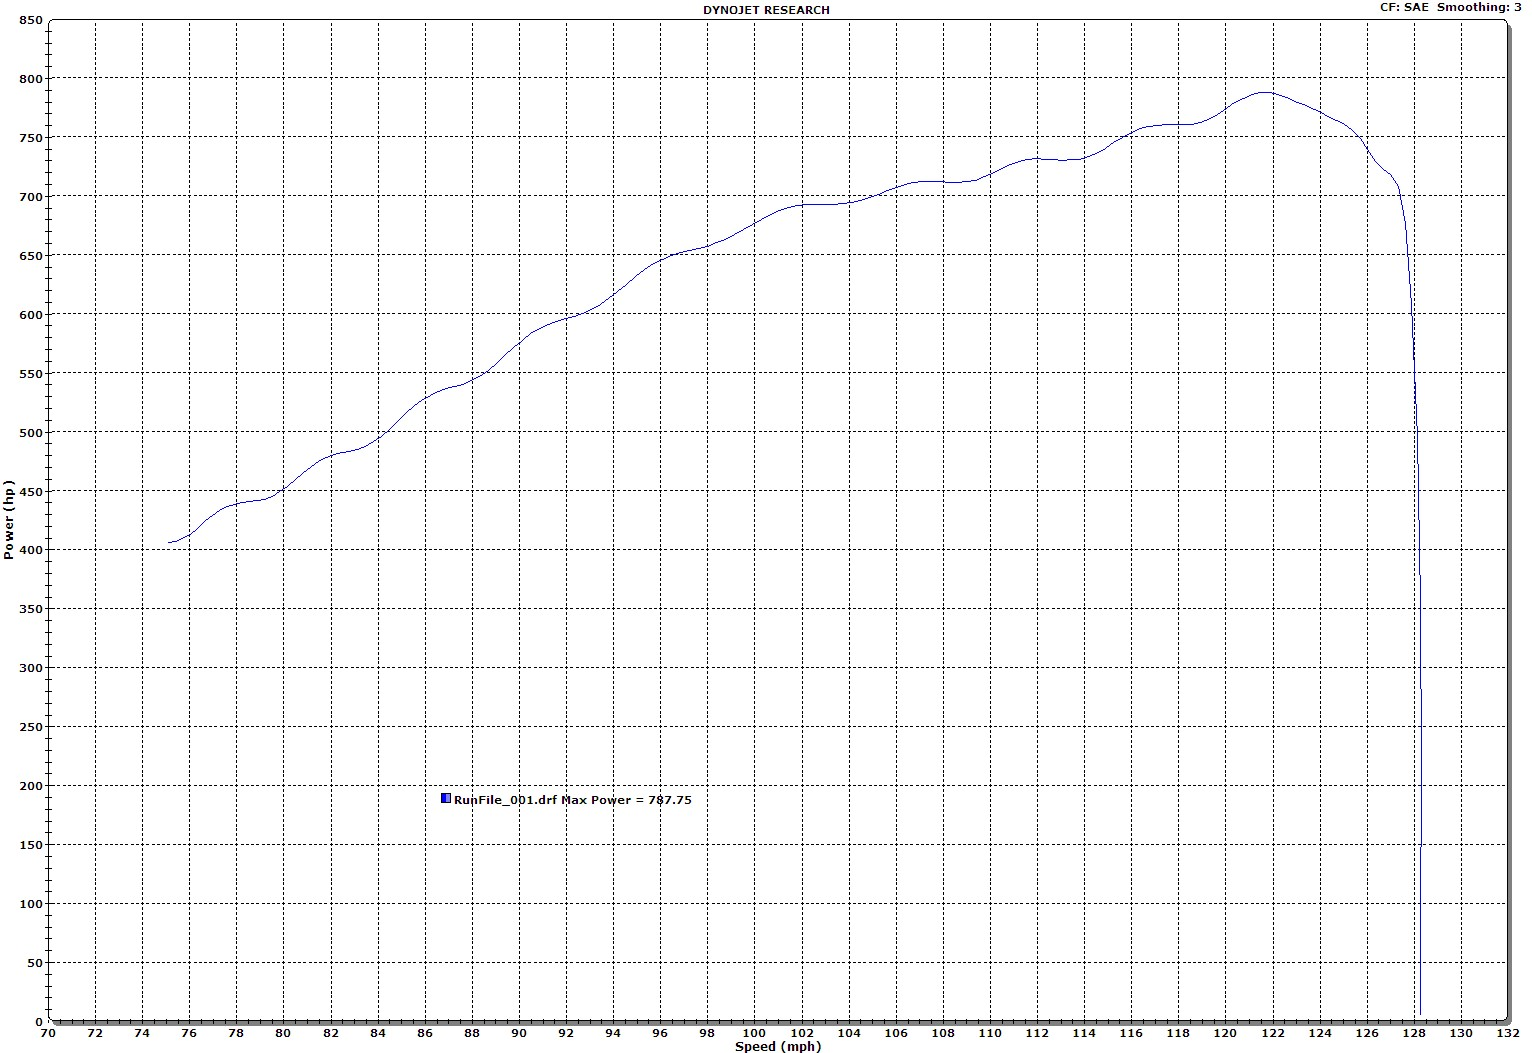 2002 Dodge Viper DLM Level 2 Dyno Results Graph